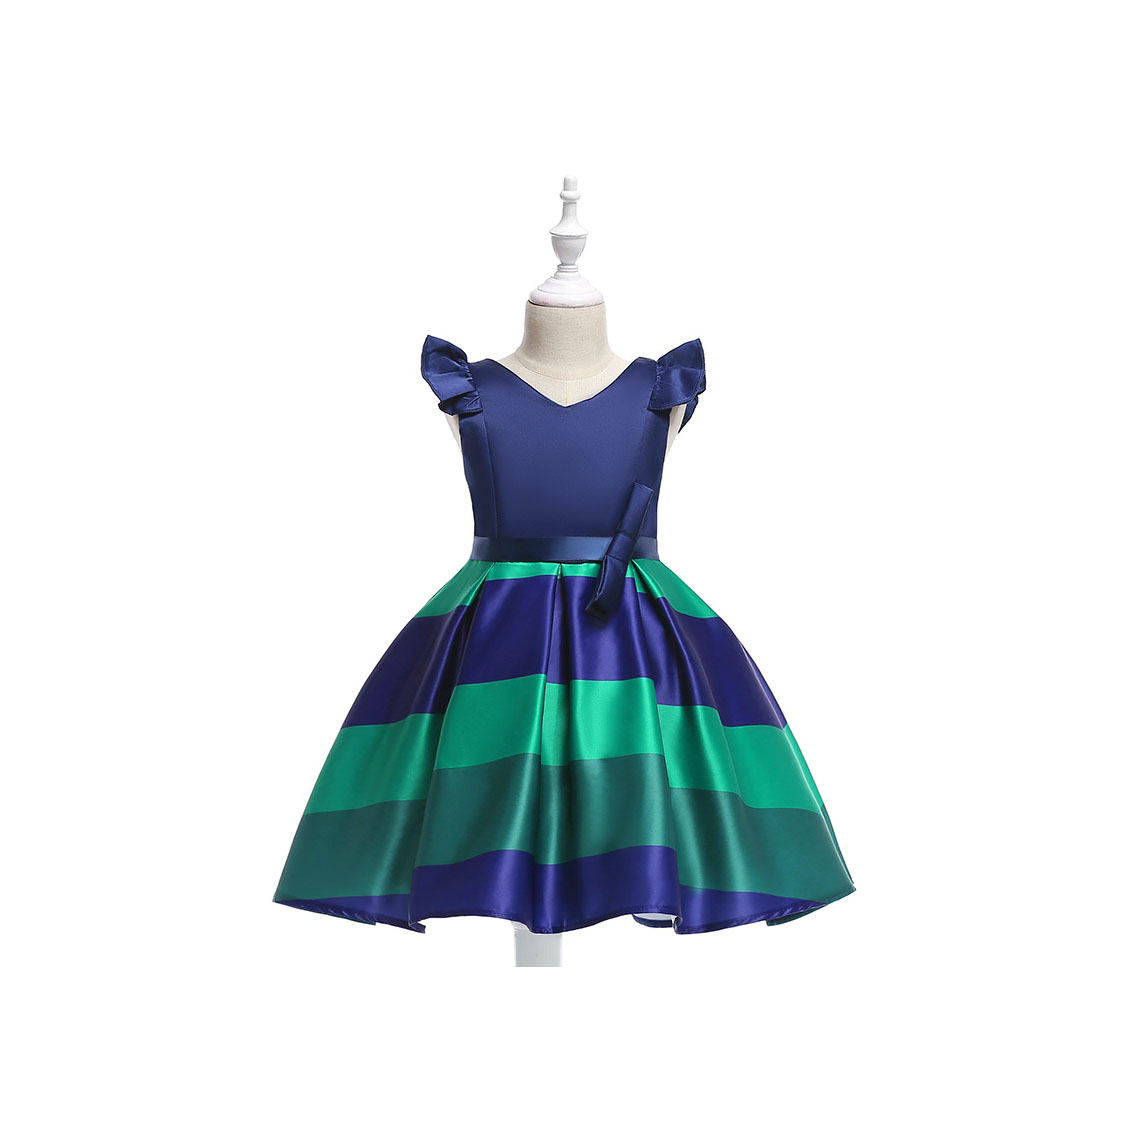 Baby Girls Striped Dress Cap Sleeve Kids Formal Party Birthday Costume Children Clothes royal blue